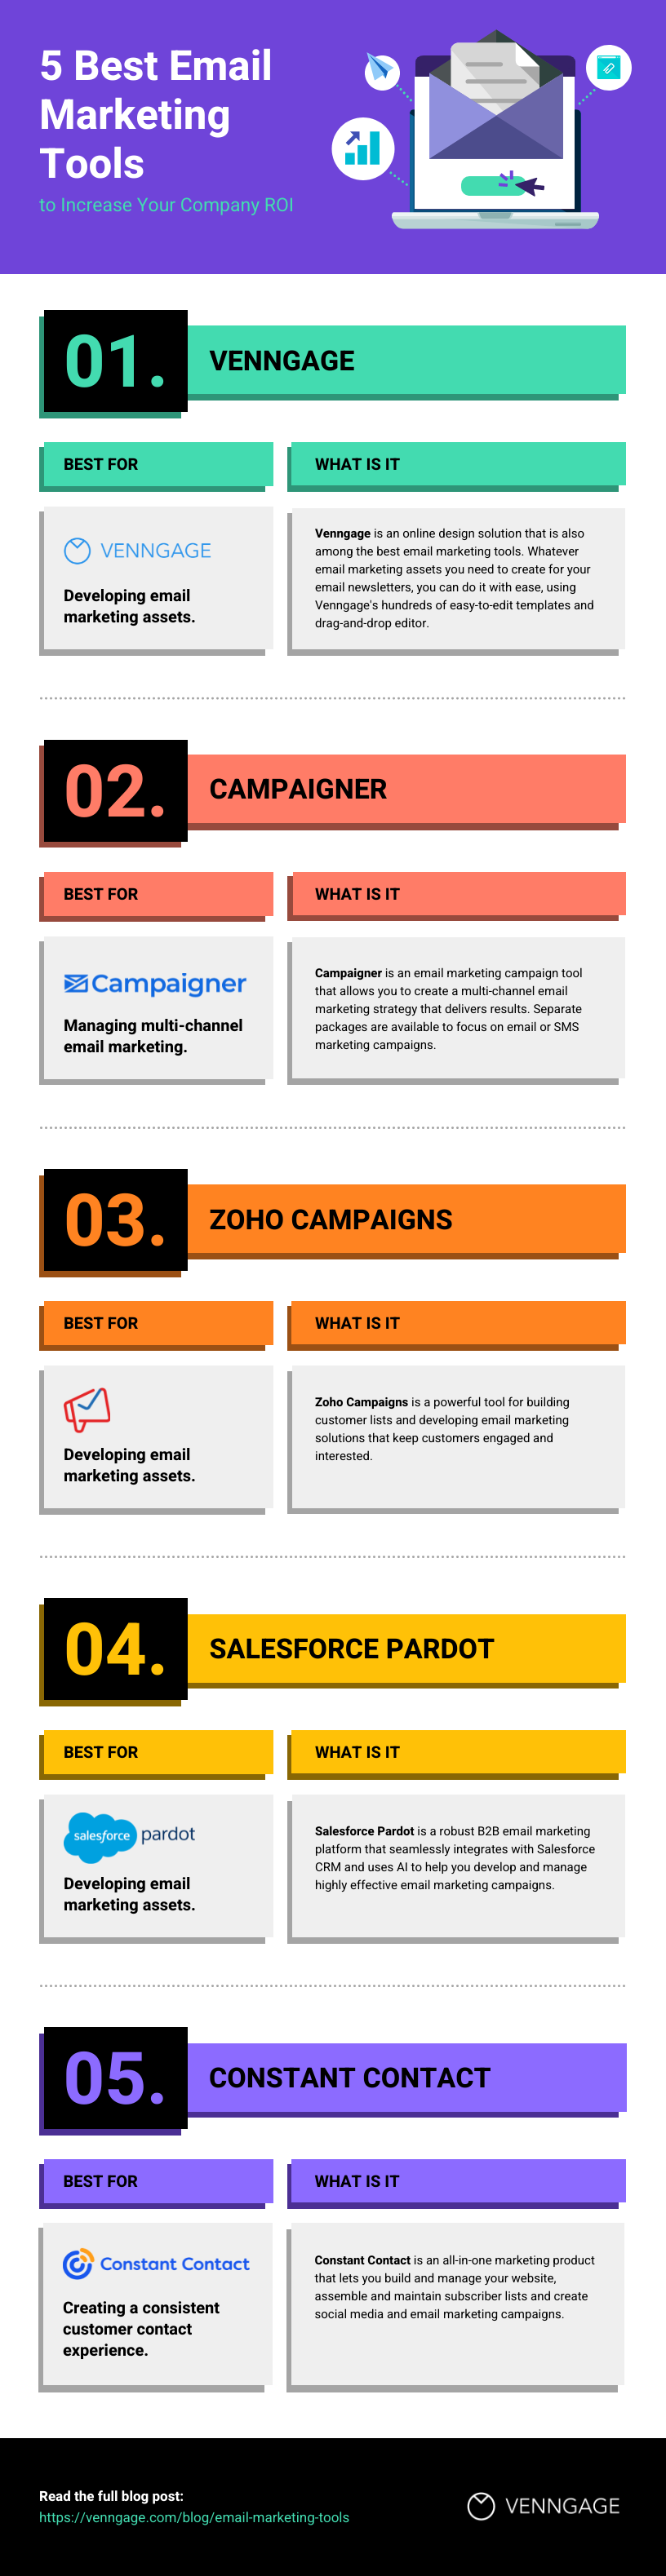 5 Best Email Marketing Tools List Infographic Template